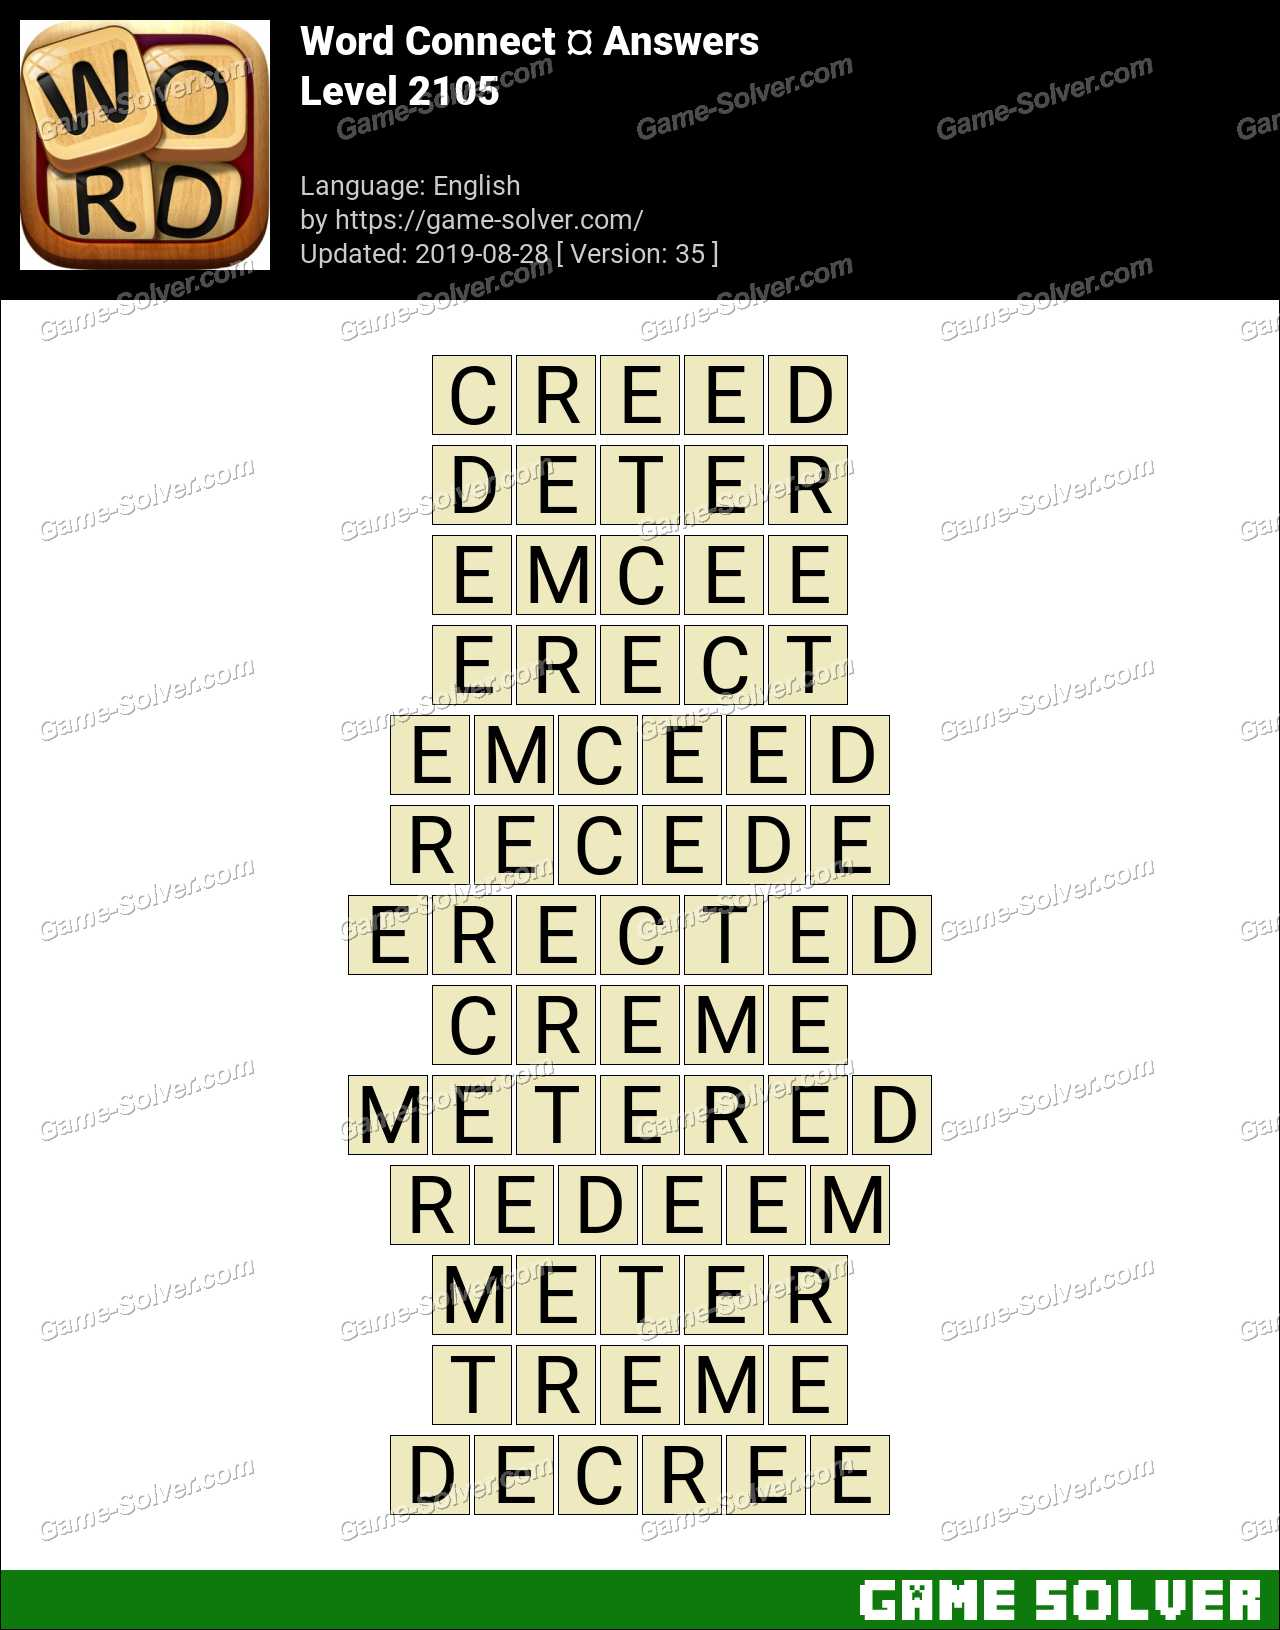 Word Connect Level 2105 Answers